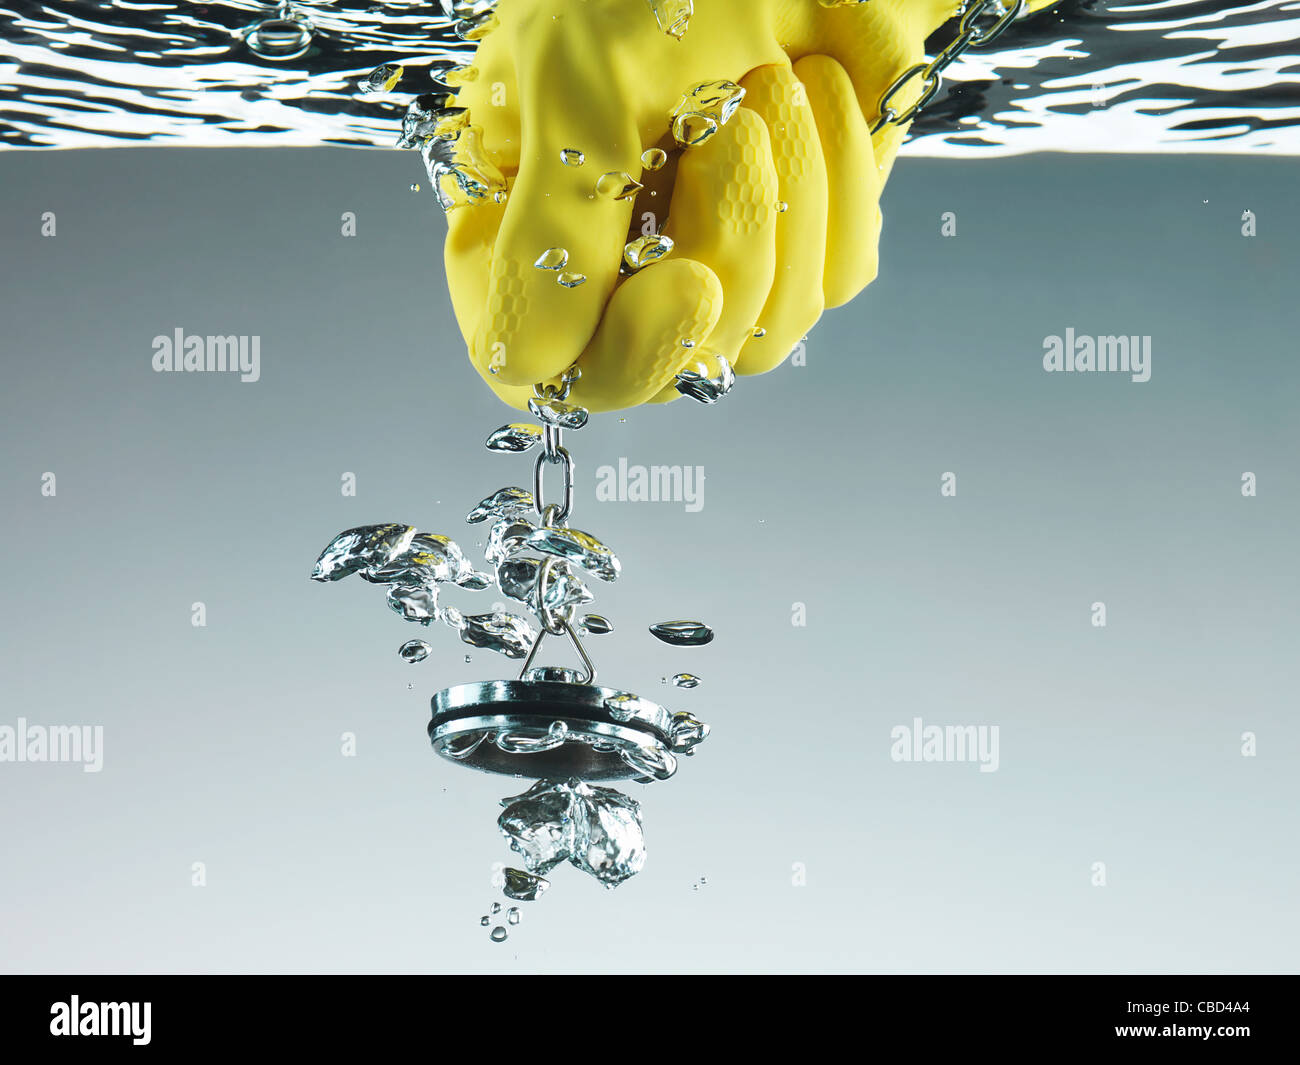 Rubber glove pulling plug in water - Stock Image